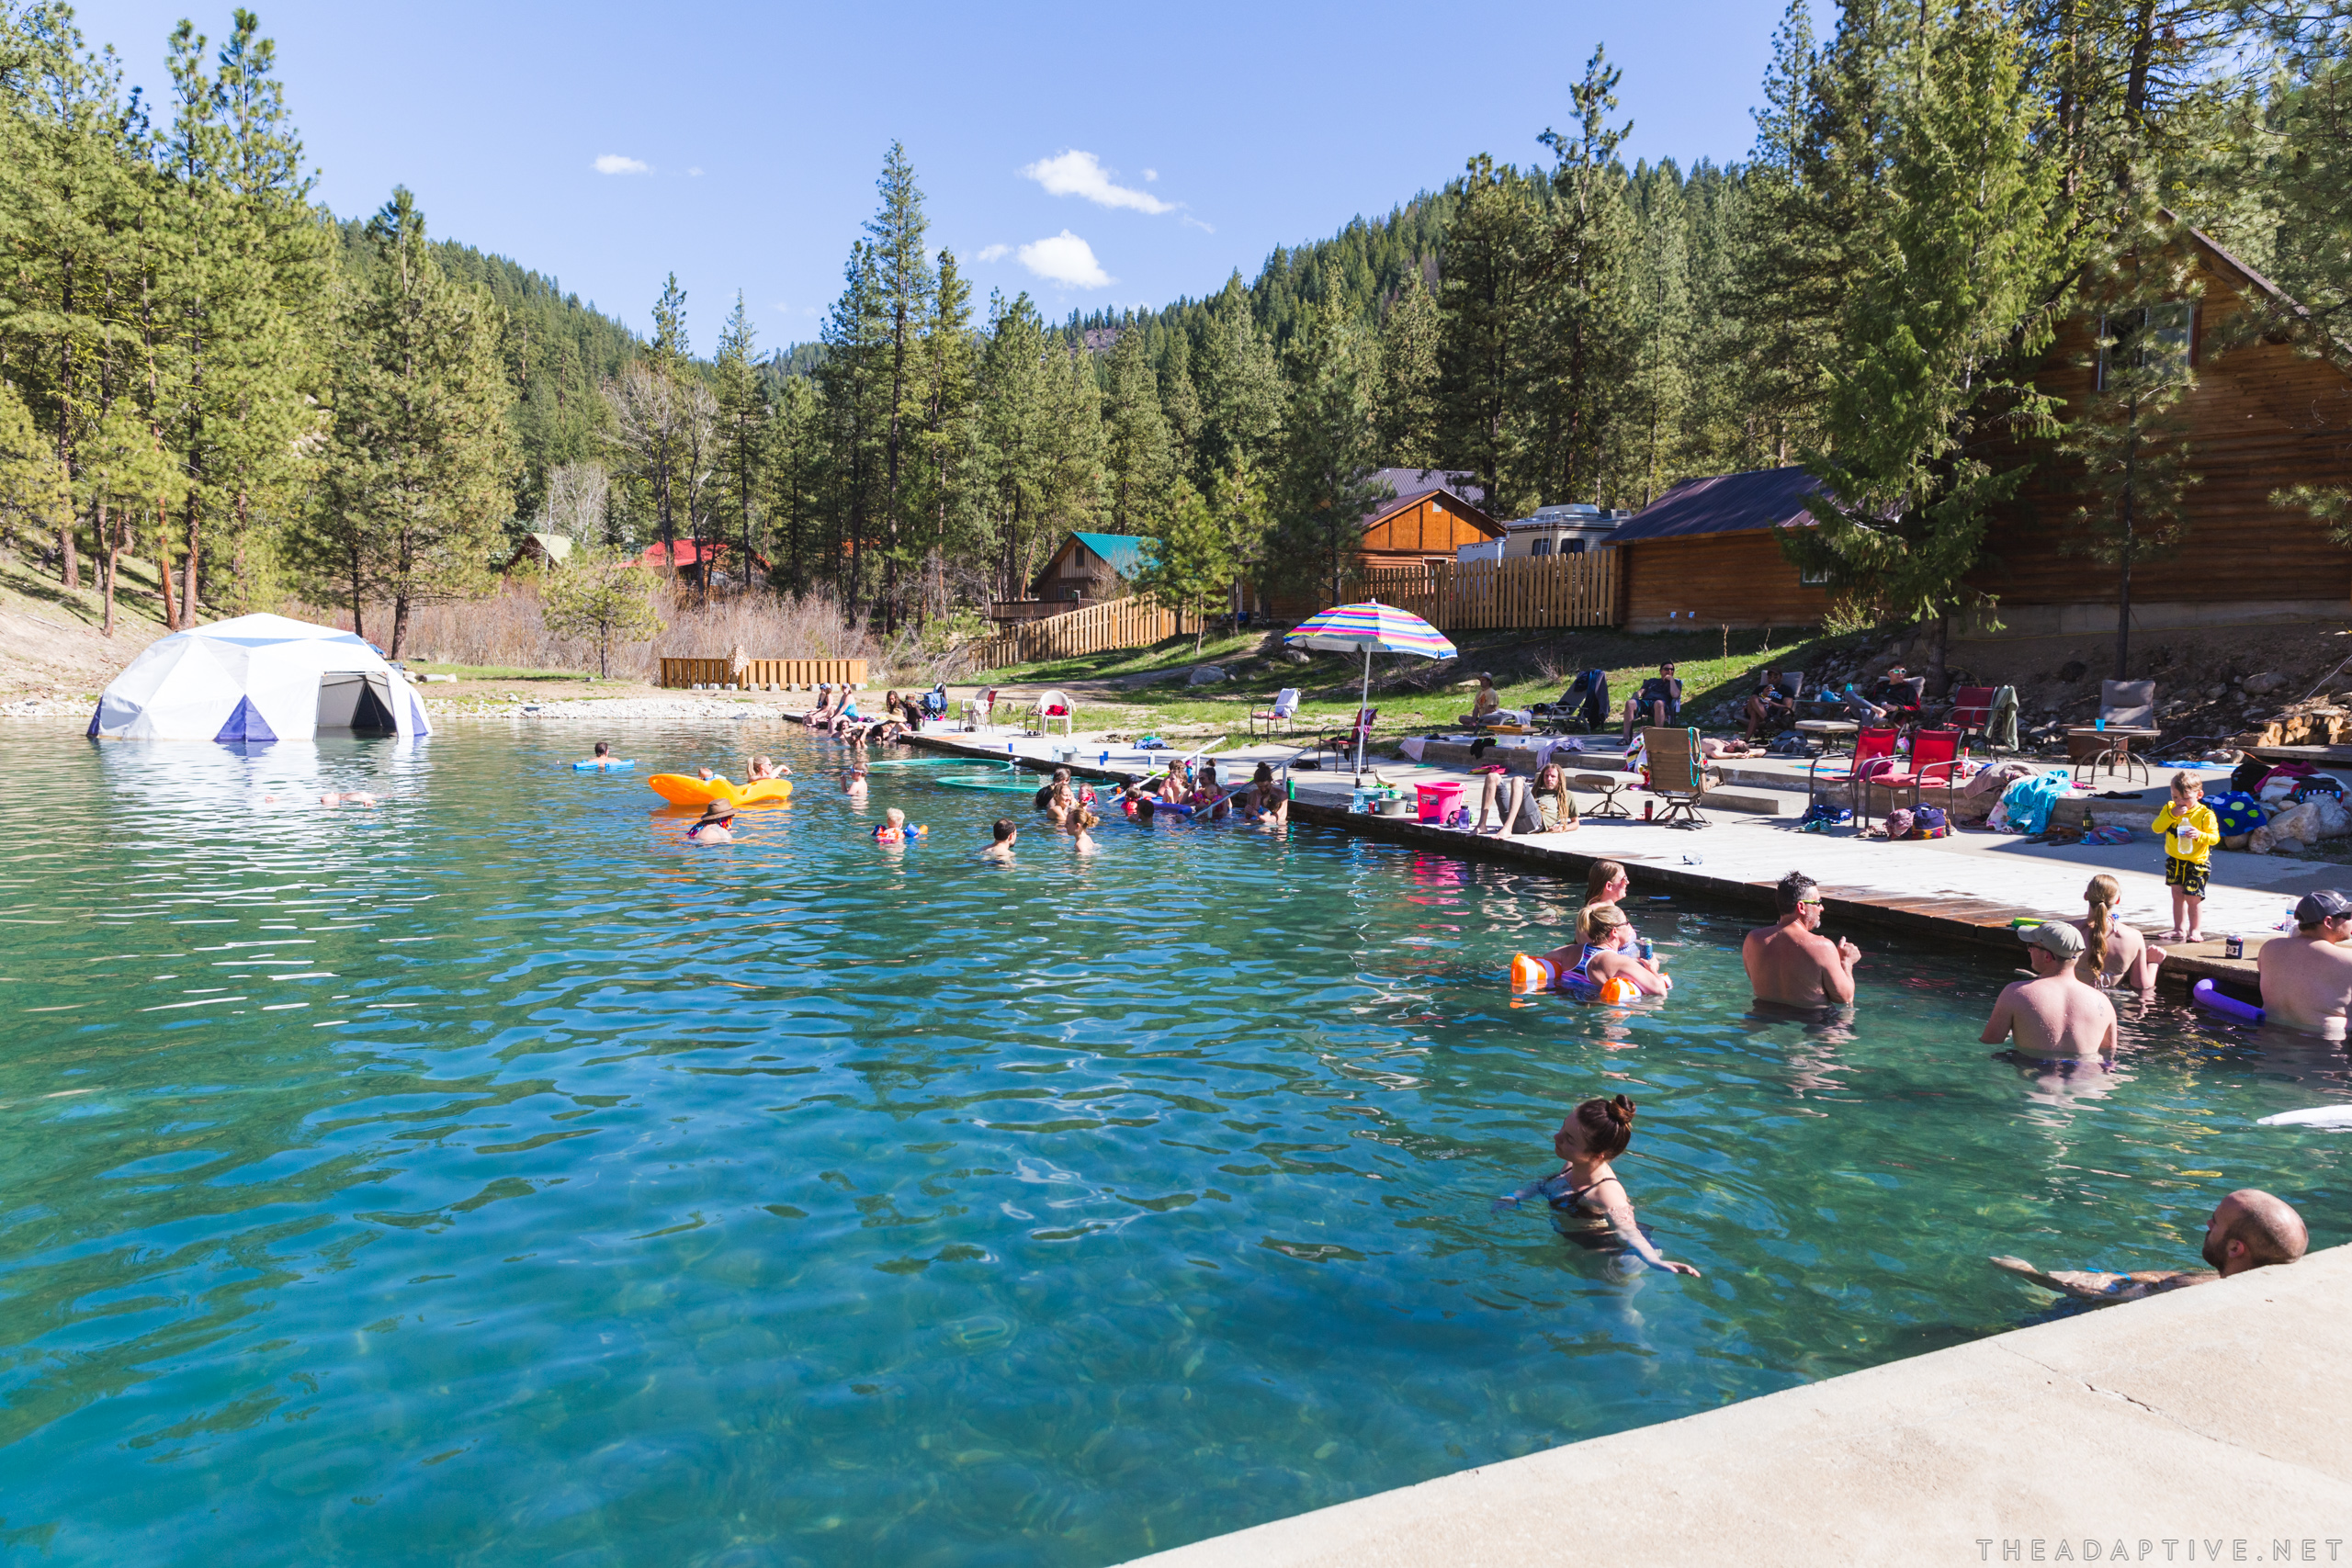 New Gallery: EmbryOasis III at Trinity Hot Springs (Featherville, Idaho)